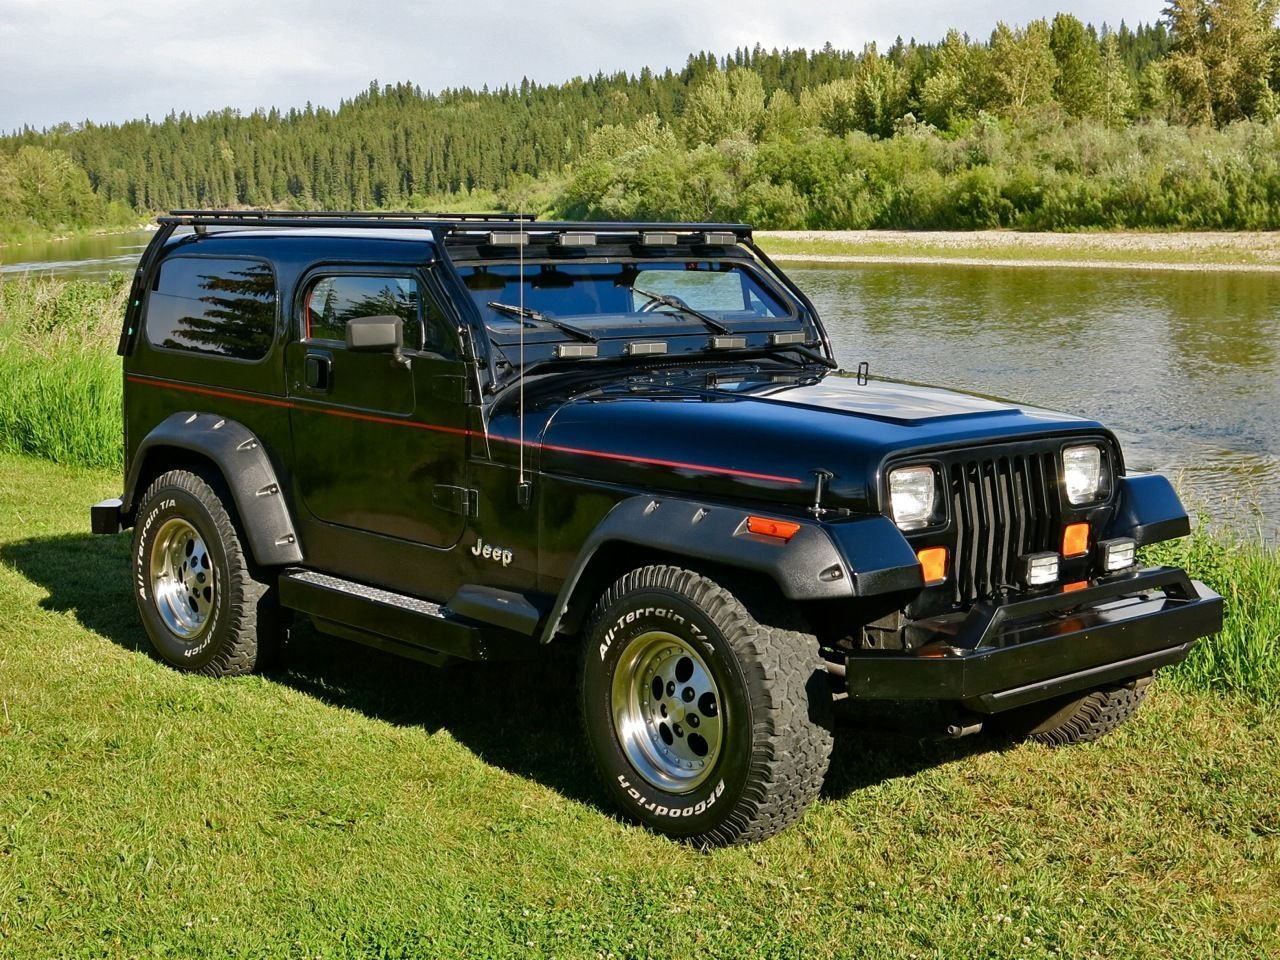 Car Brand Auctioned Jeep Wrangler Chopped Roof 1992 Car Model Jeep